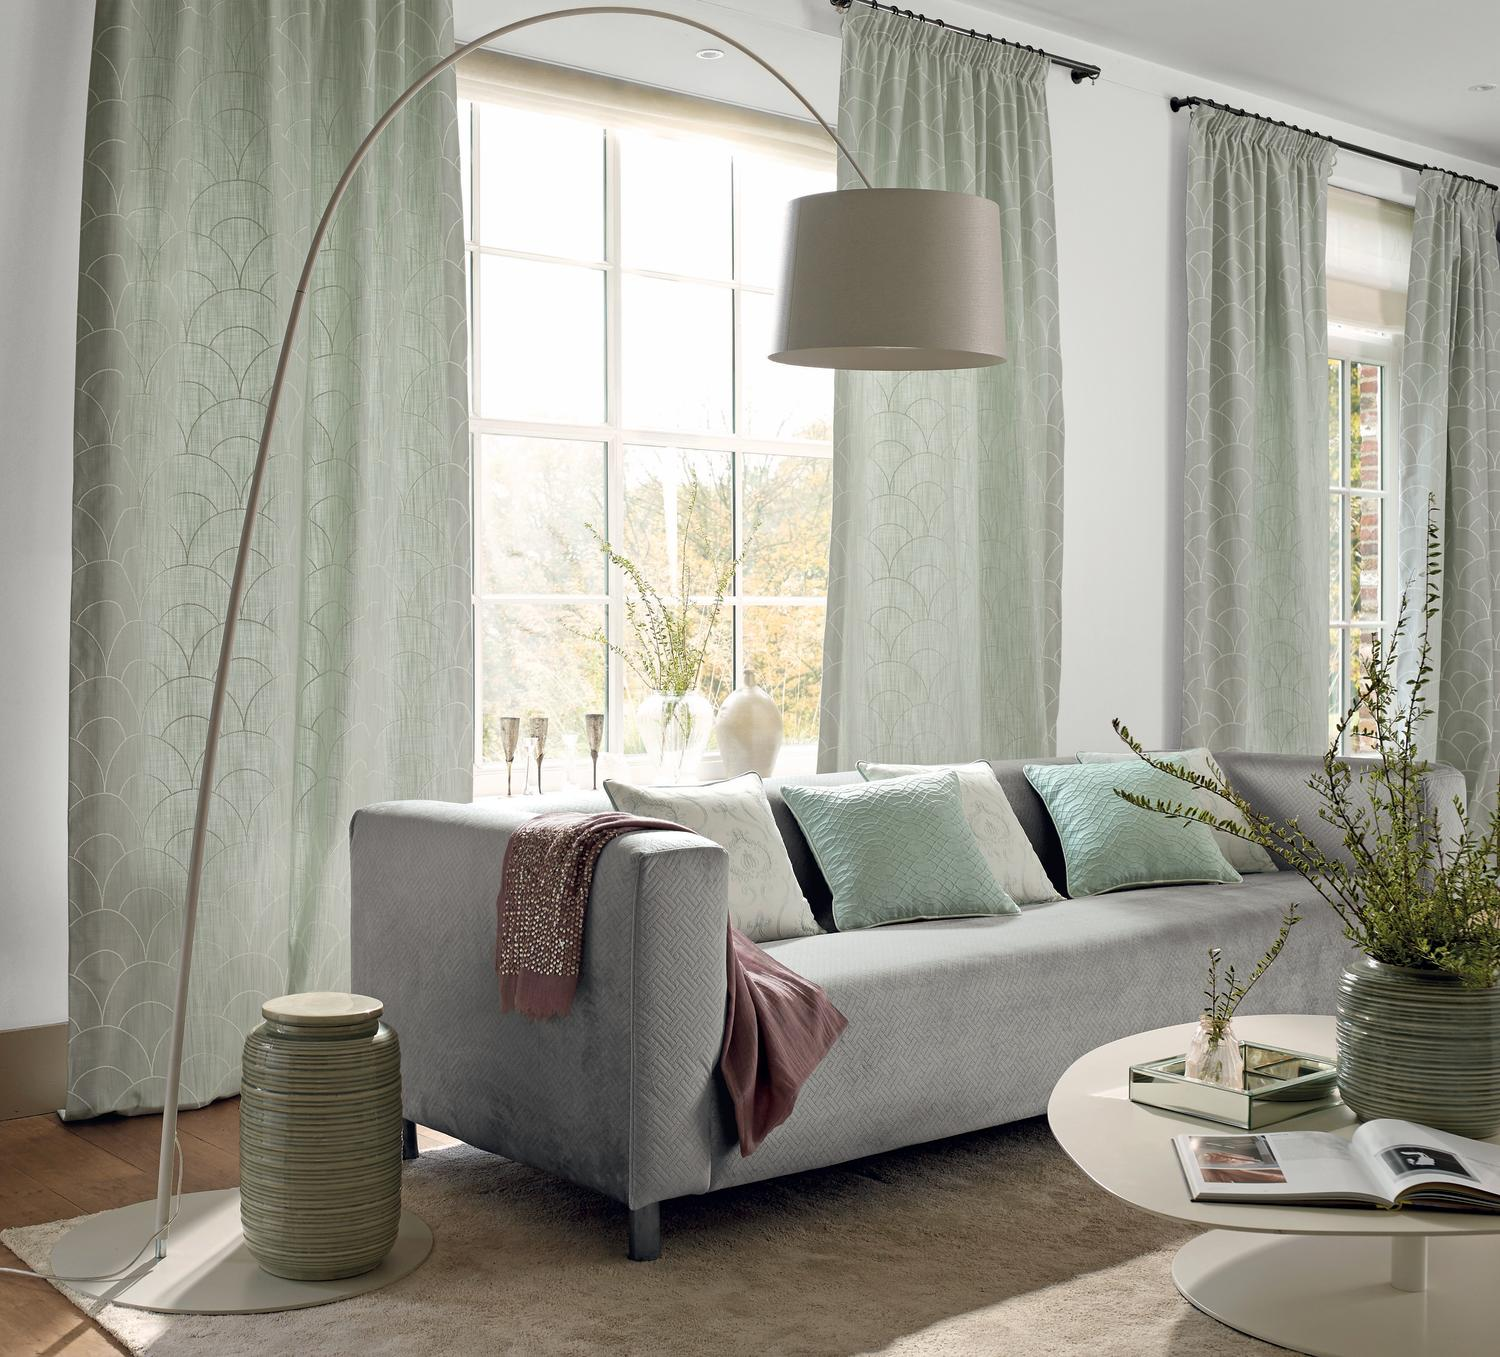 Curving floor lamp with grey lamp shade